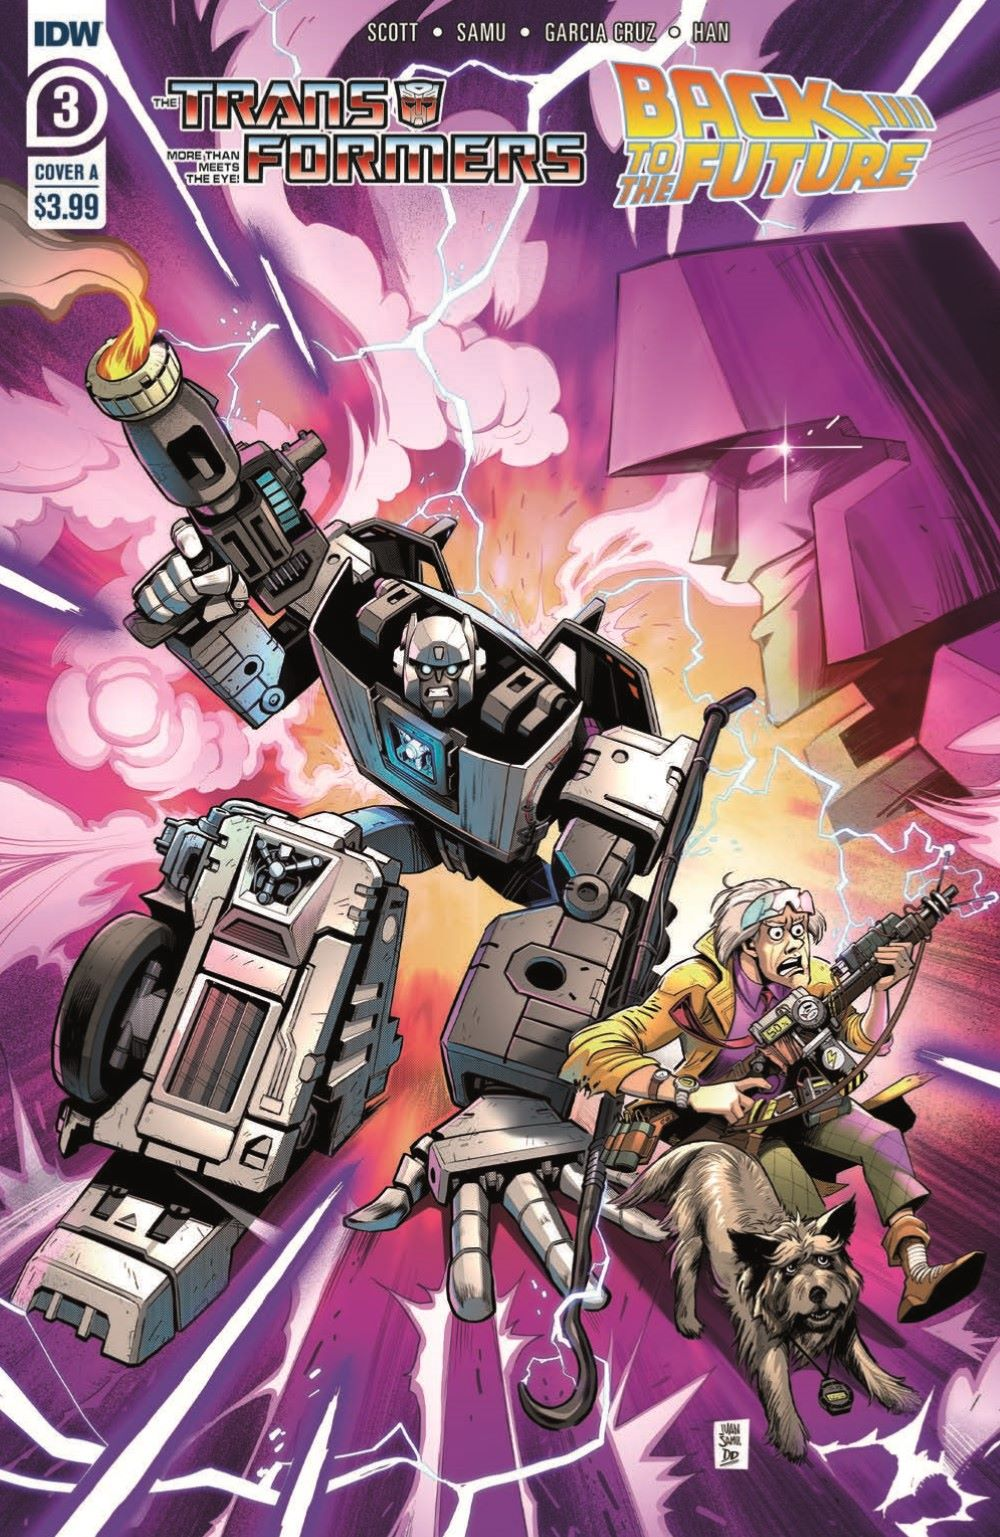 TF_BTTF03-pr-1 ComicList Previews: TRANSFORMERS BACK TO THE FUTURE #3 (OF 4)